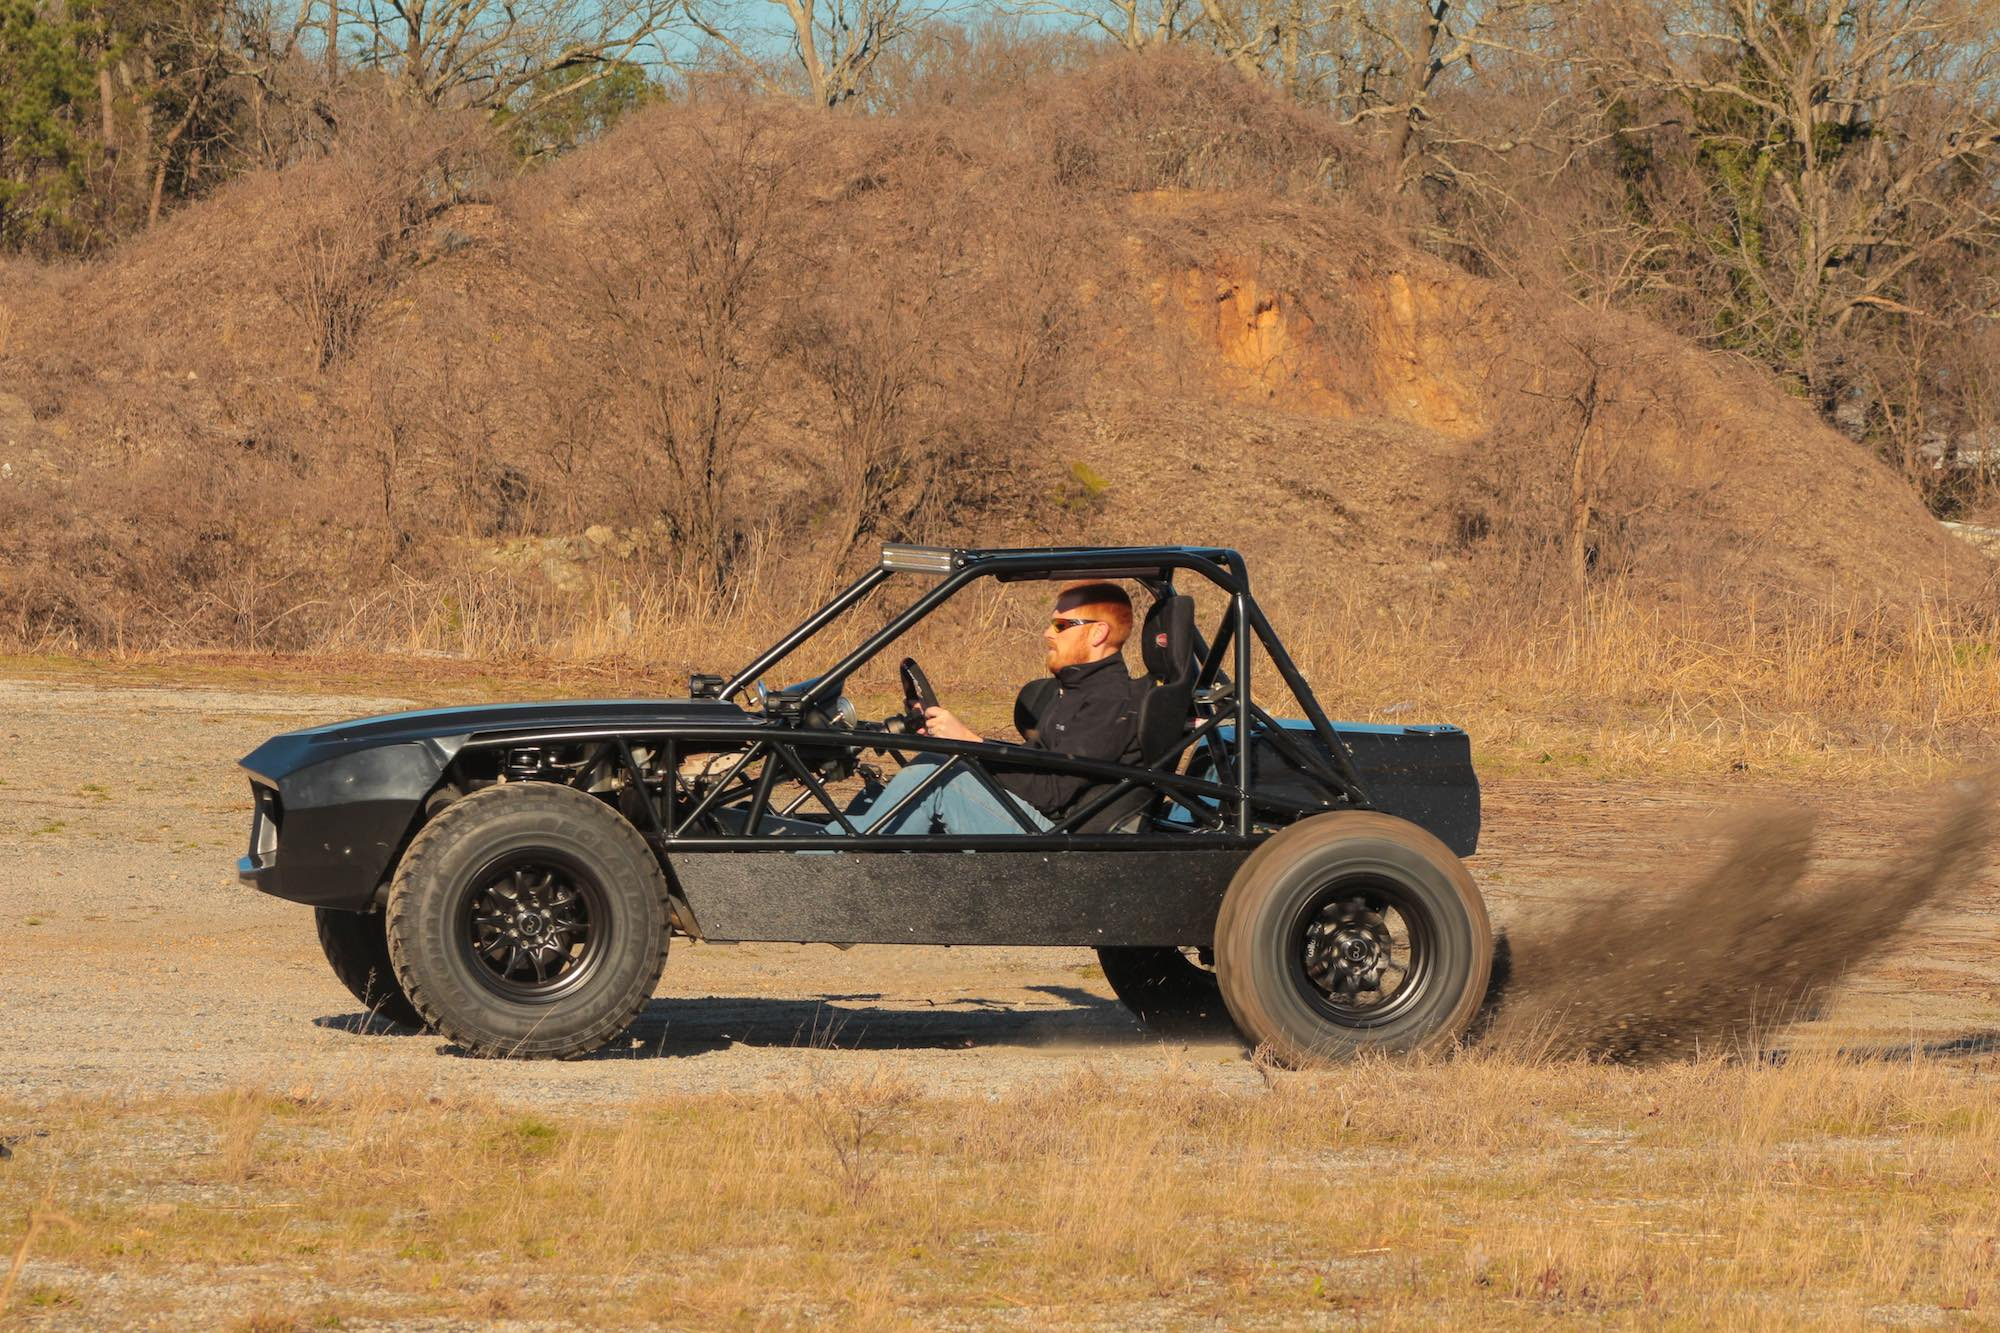 Exocet-Off-Road-Pure-Fun-Exomotive.jpg